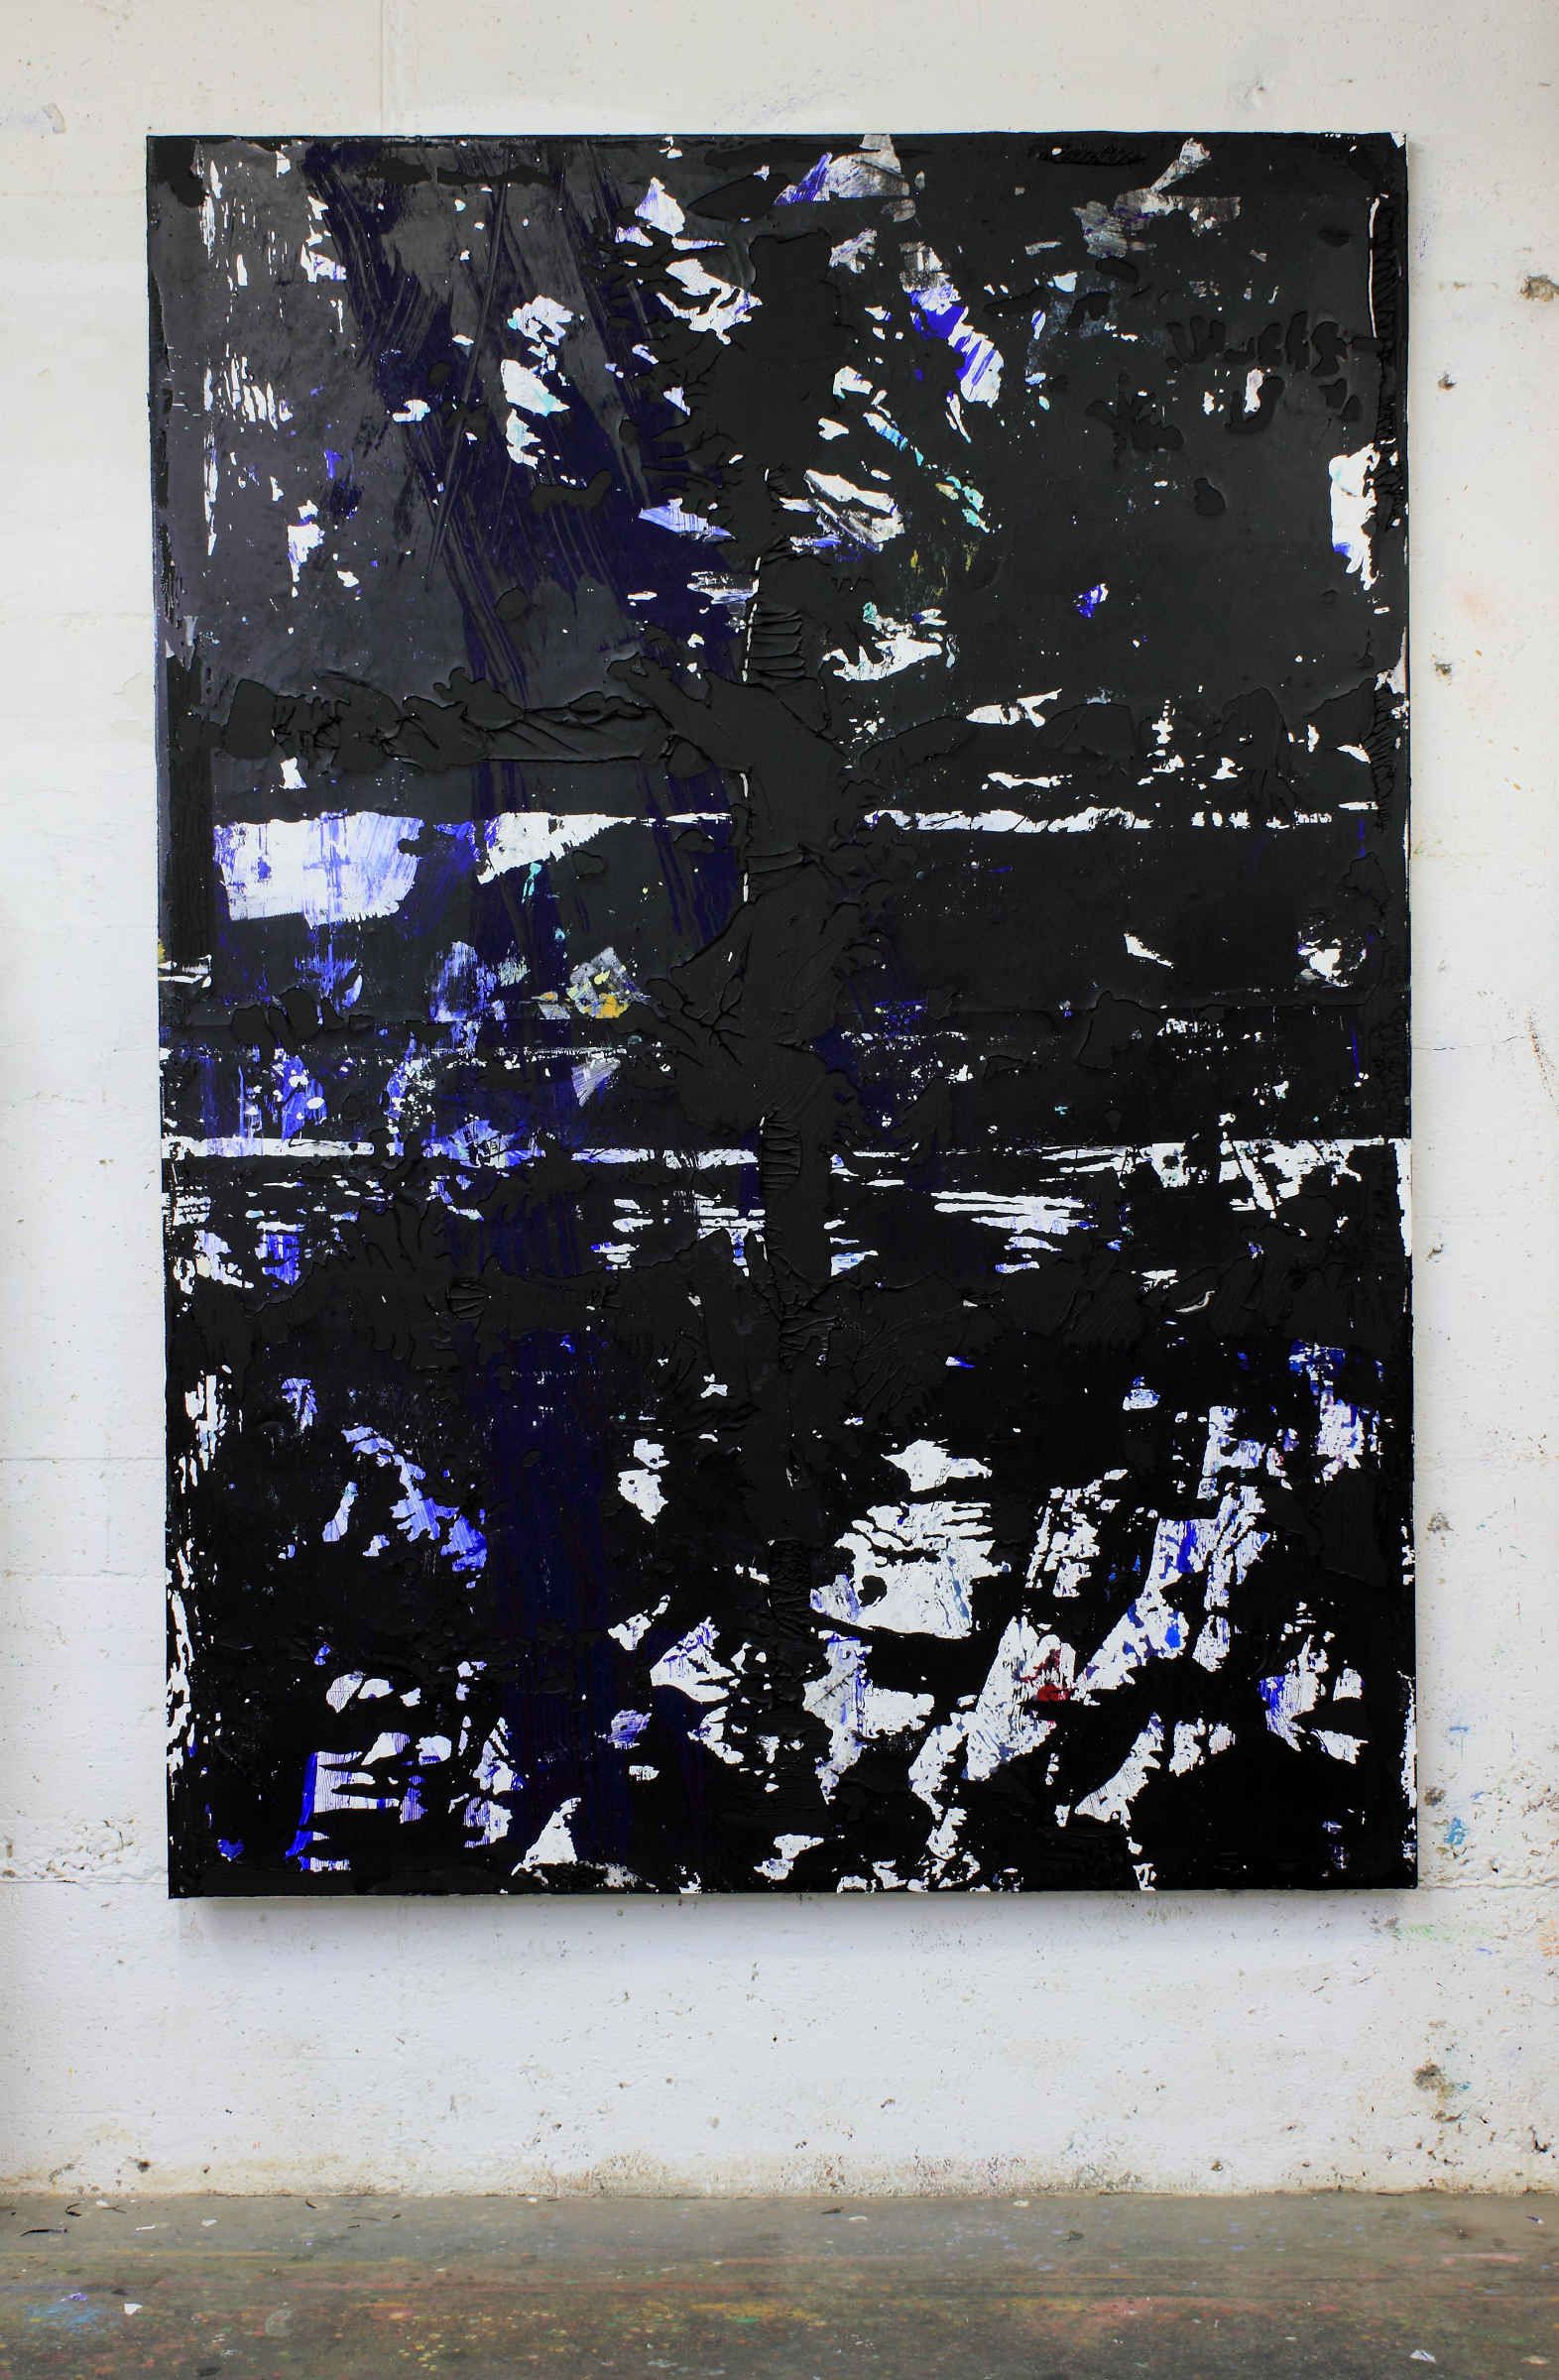 36_untitled, 2015, acrylic, acrylic sediments, binder and dirt on primer on cotton, cm 210x150